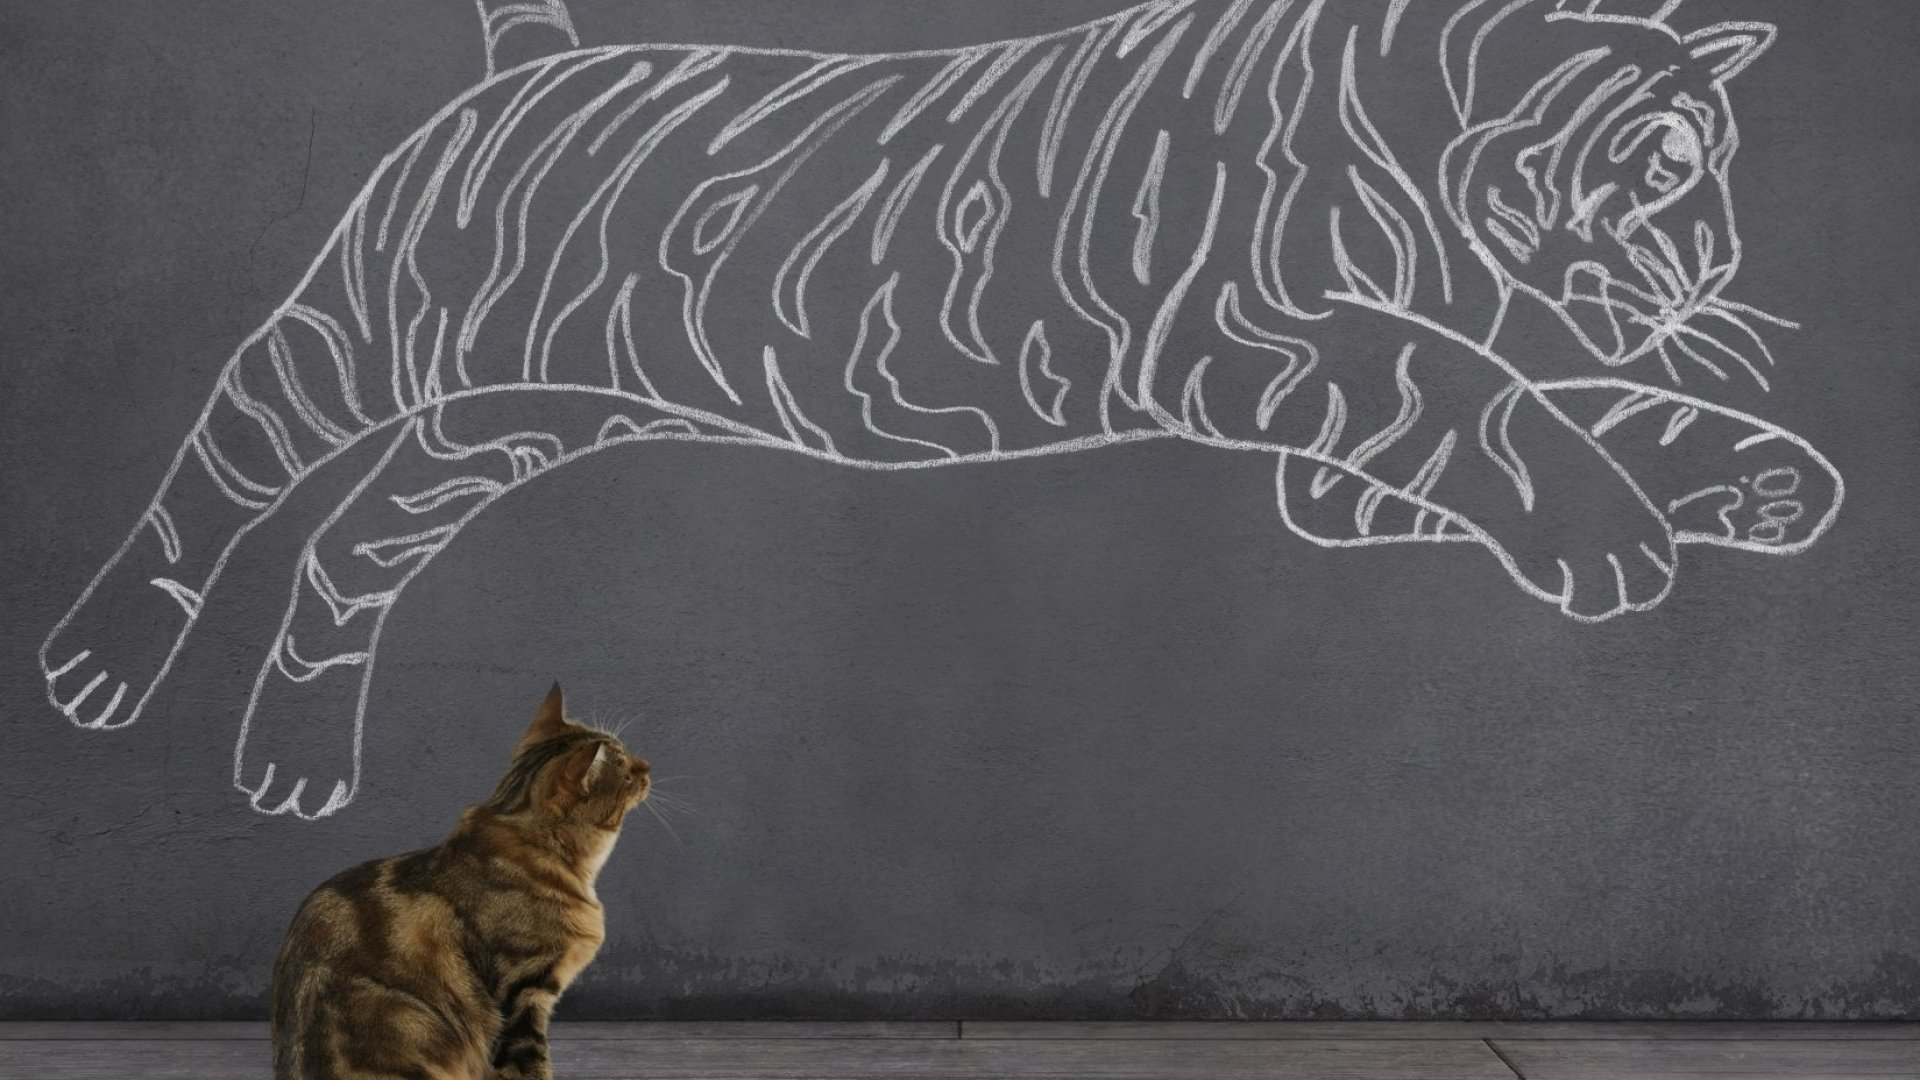 Want Your Company to Keep Growing Fast? Avoid These 3 Pitfalls